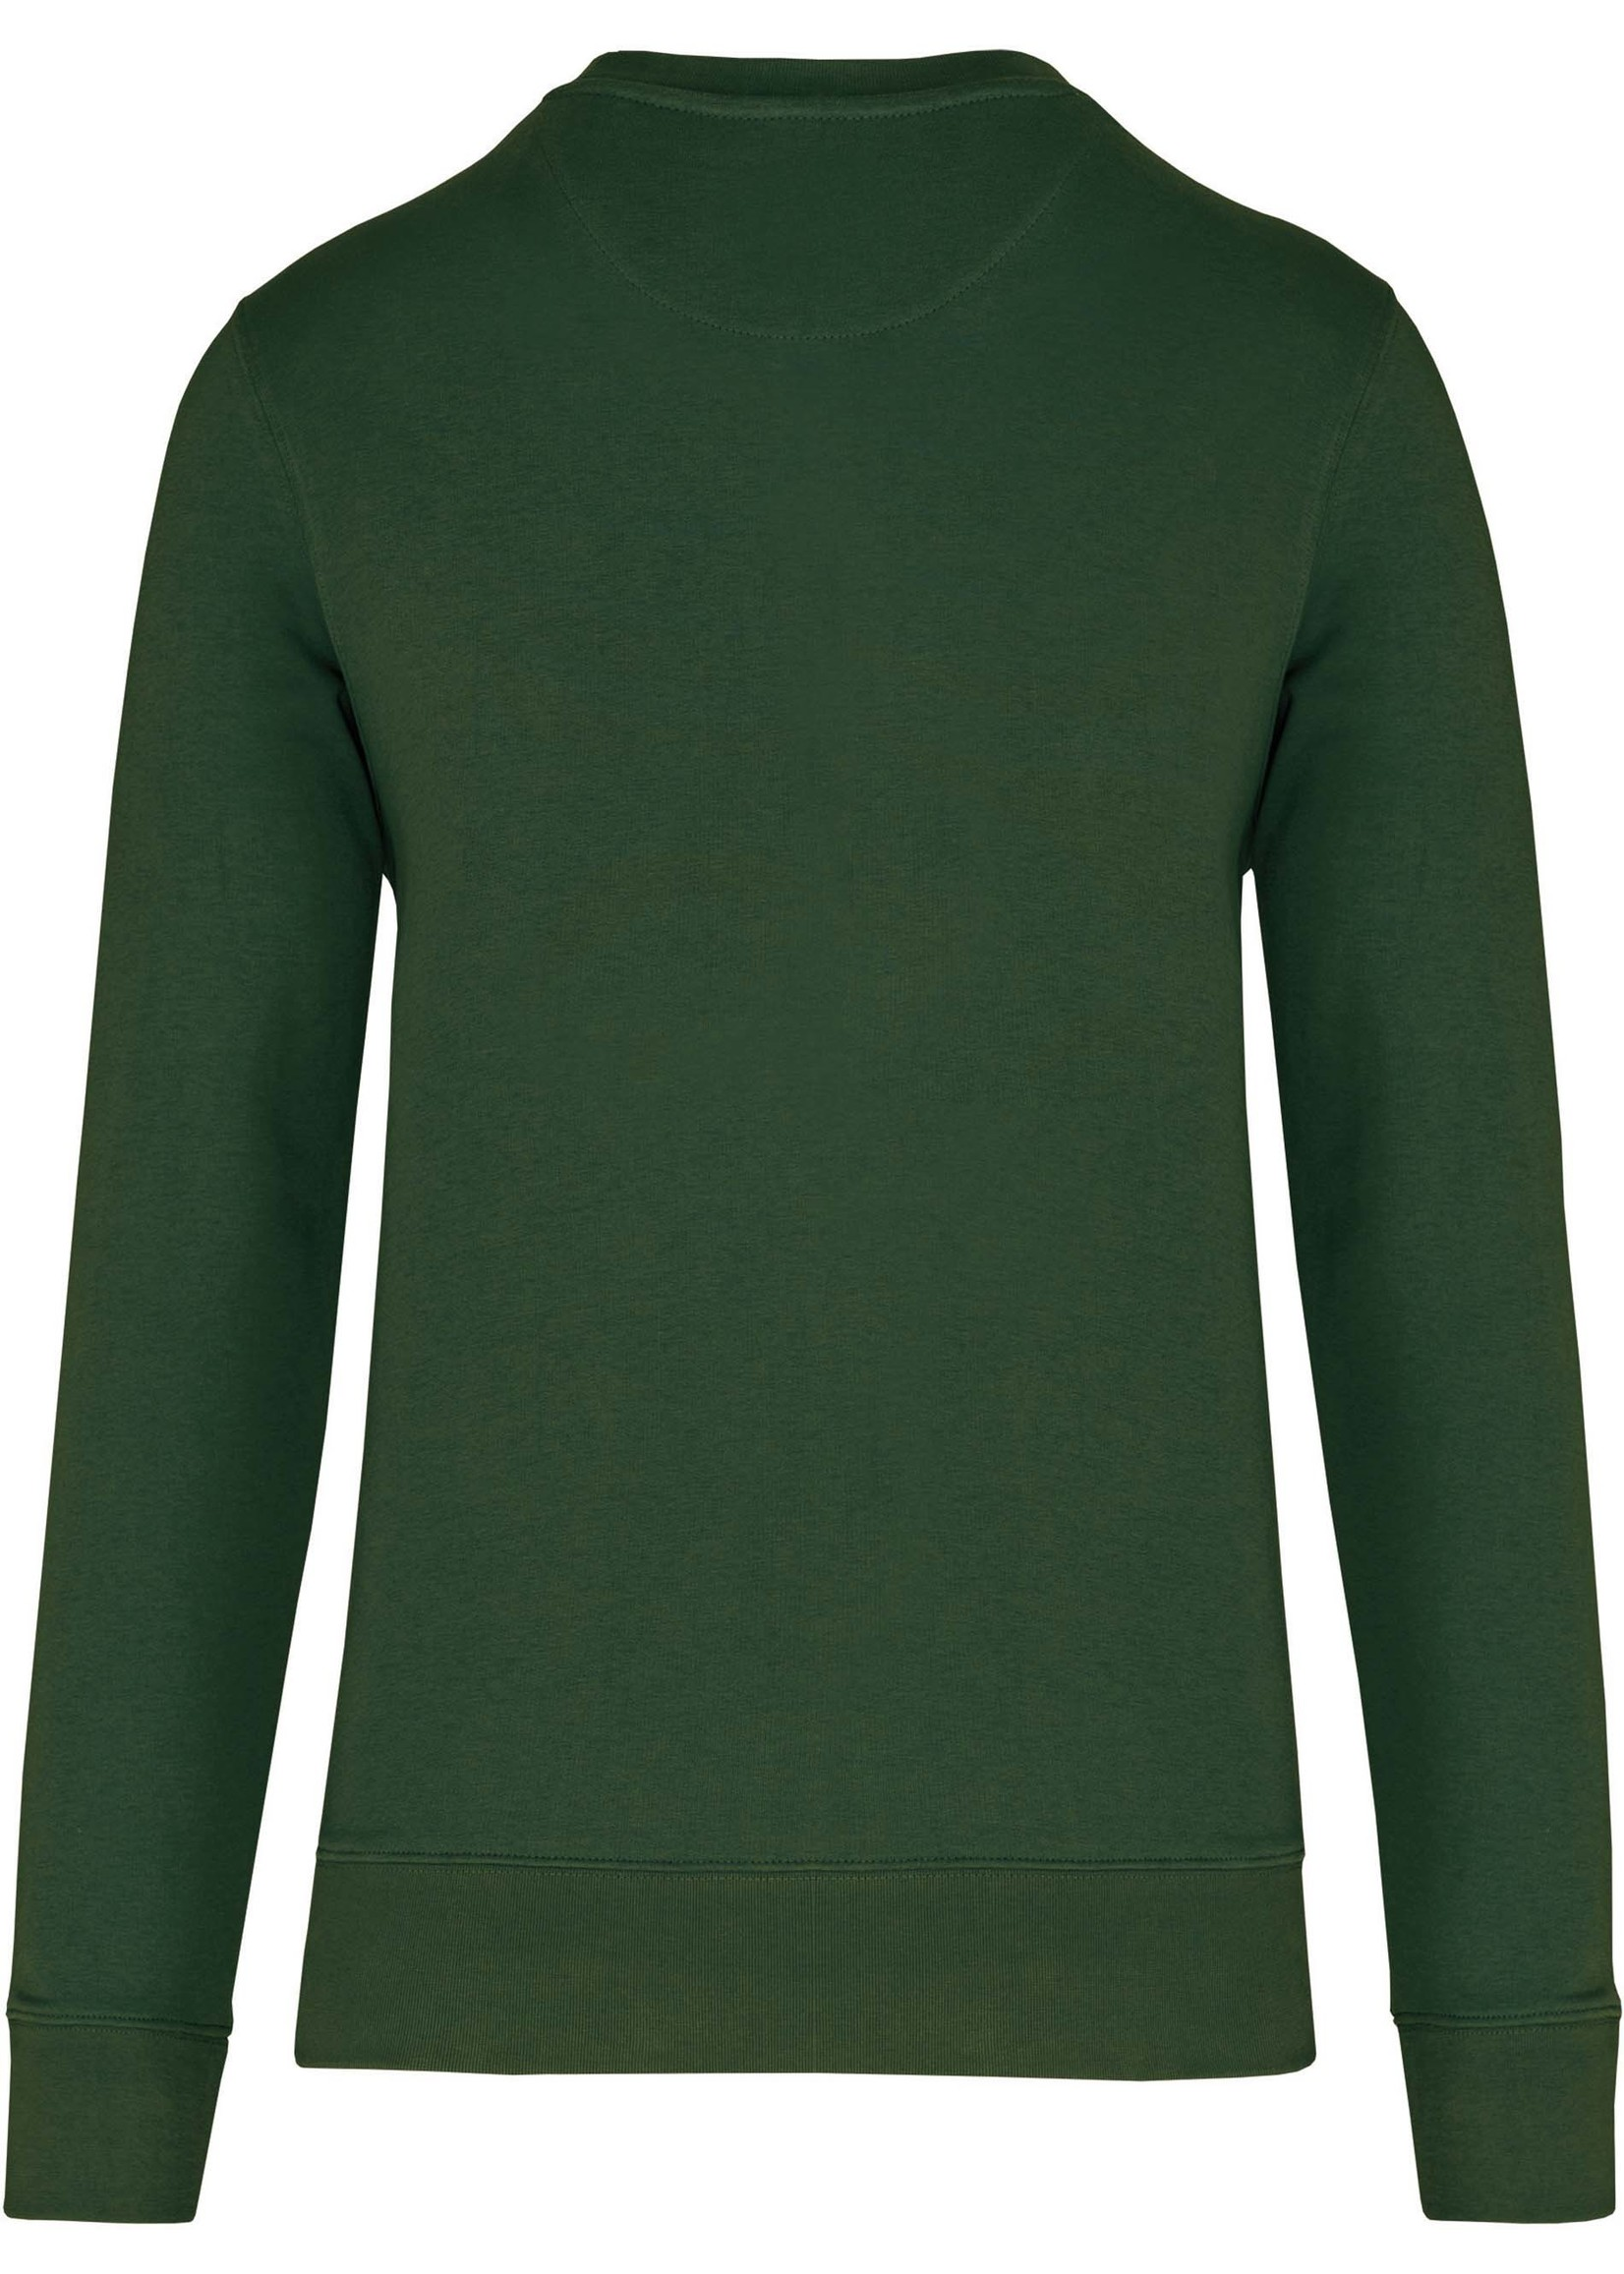 Eco-Friendly Crew Neck Sweater Kids-Forest Green